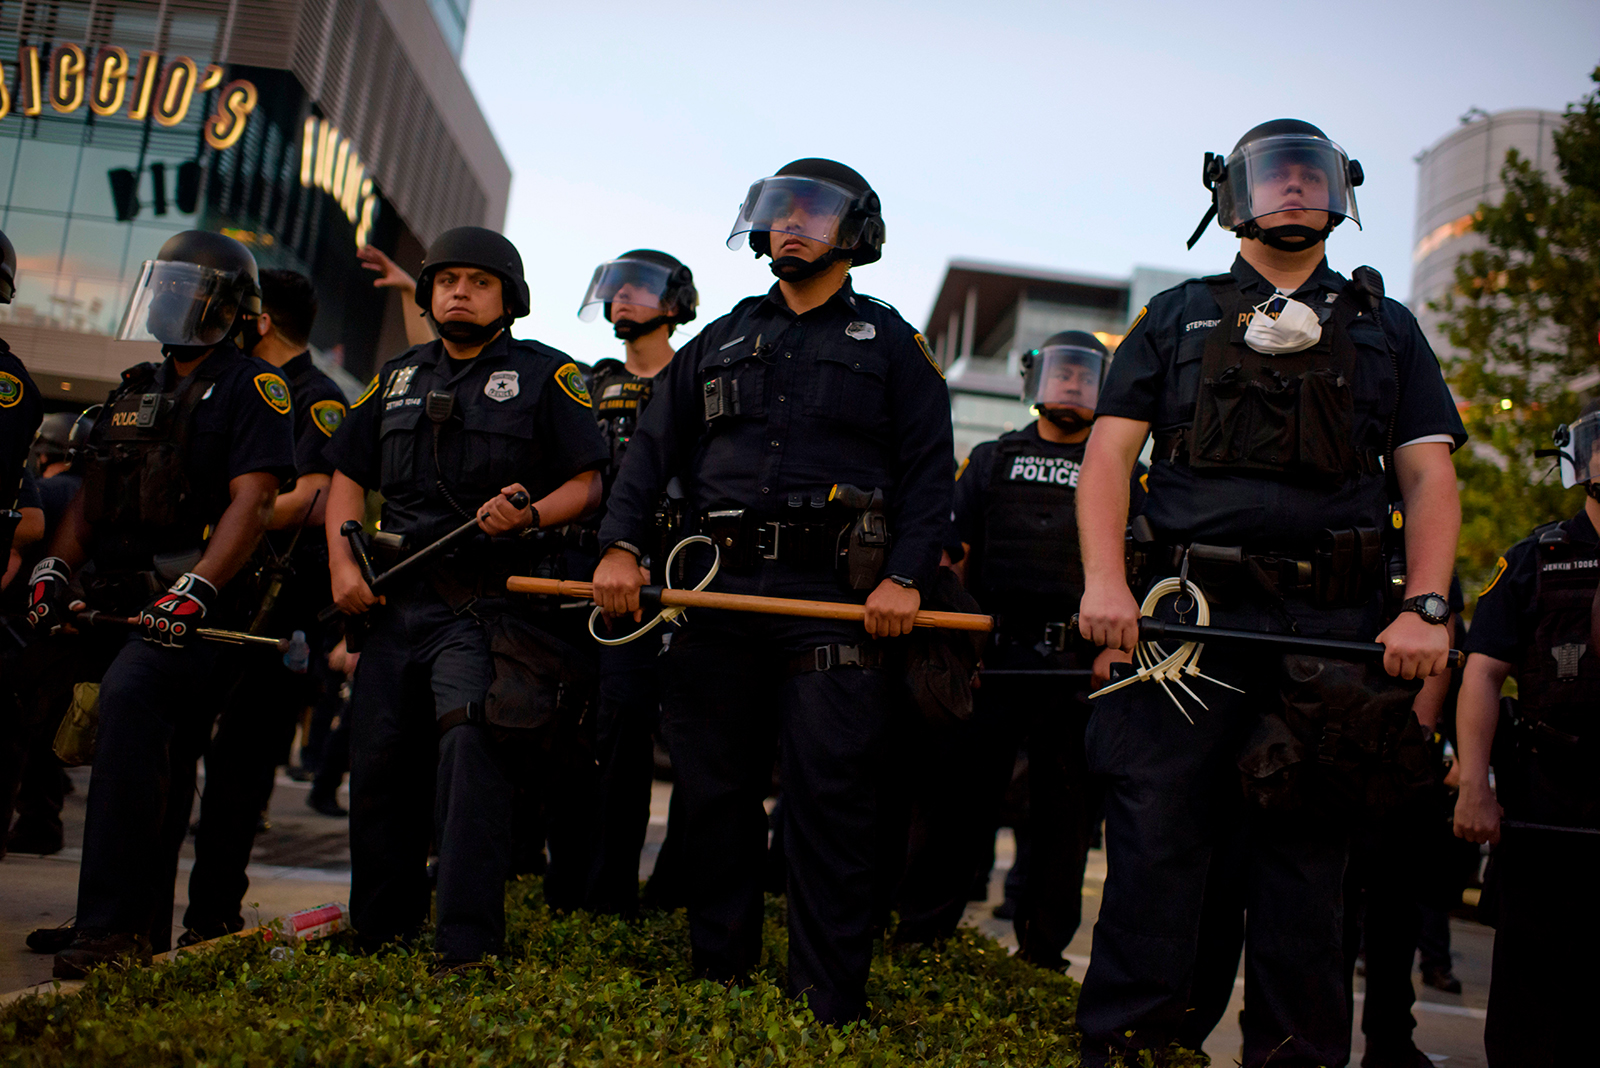 Police officers stand guard after a peaceful march to mourn the death of George Floyd in downtown Houston, on Tuesday, June 2.